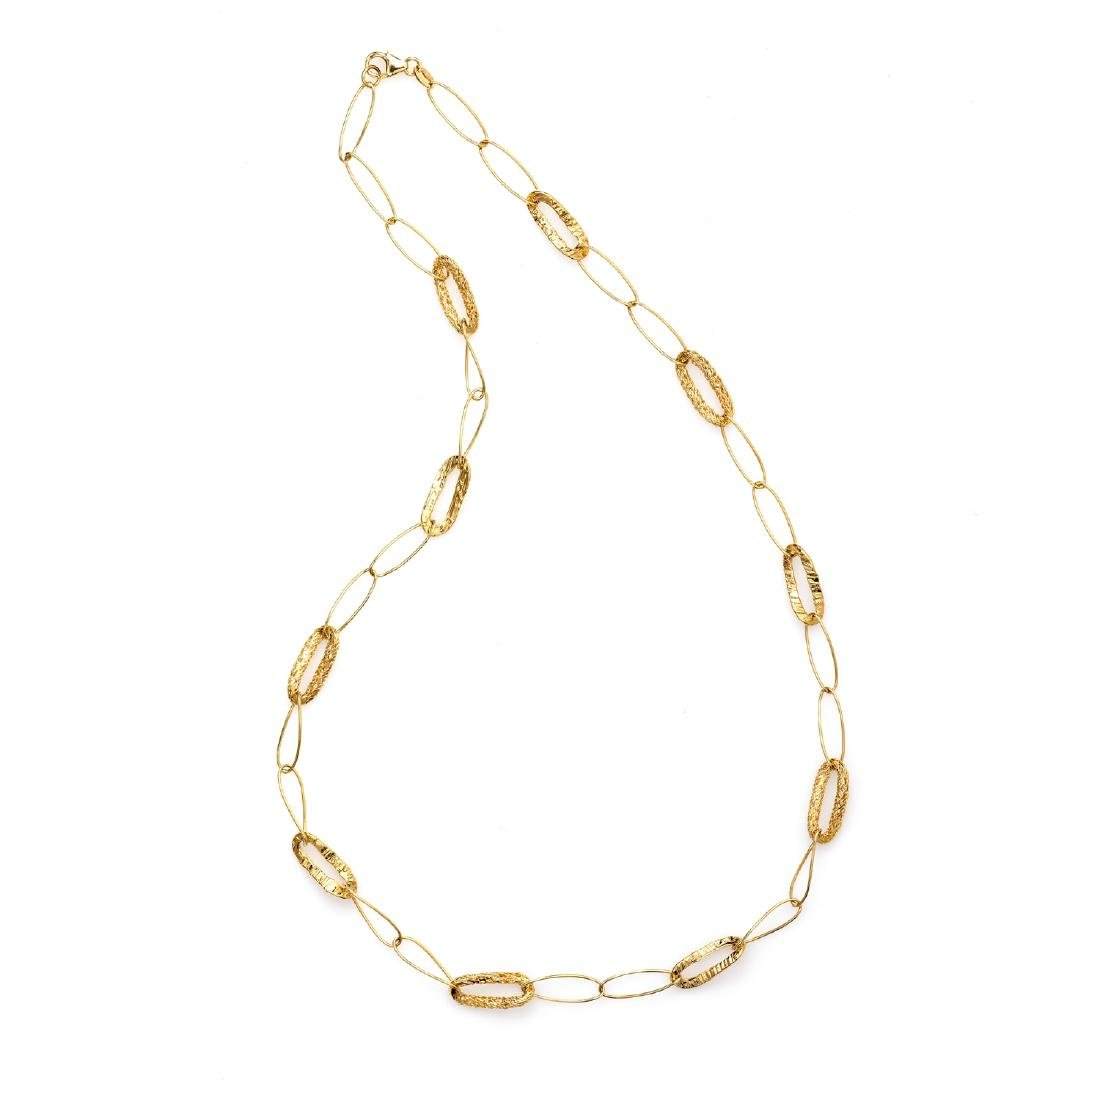 *Fine Jewelry 14KT Gold, Oval Links, Open Cage, 7.5GR.